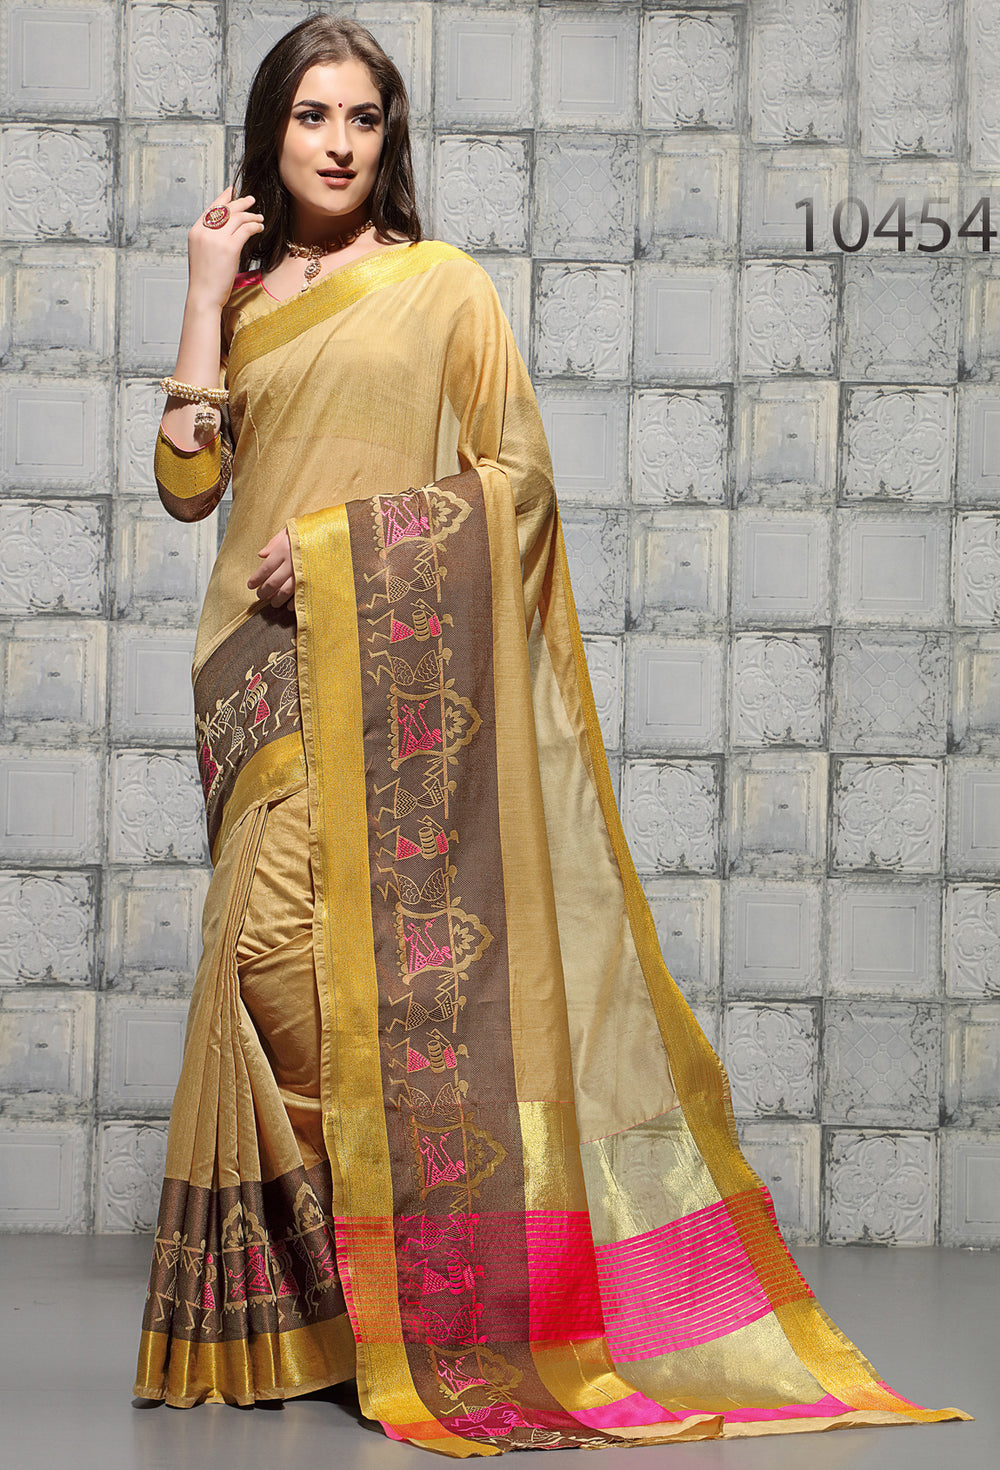 Roop Kashish Women Gold Party Wear woven Cotton Printed Saree And Border And Cotton Blouse Material_RKSCSUNAHARI10454